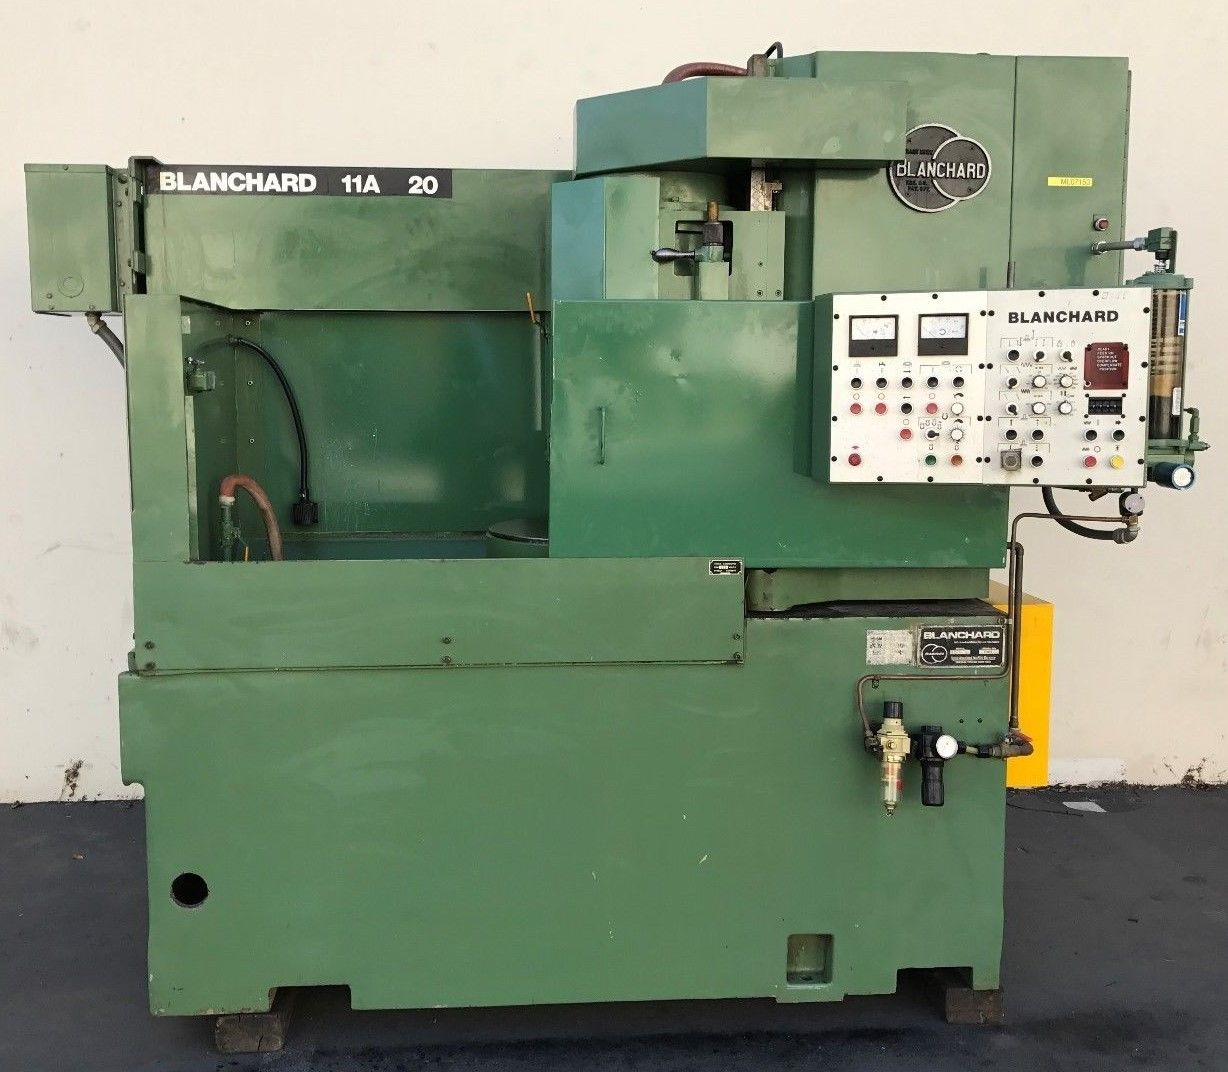 rotary surface grinder. blanchard-11a-20-rotary-surface-grinder rotary surface grinder